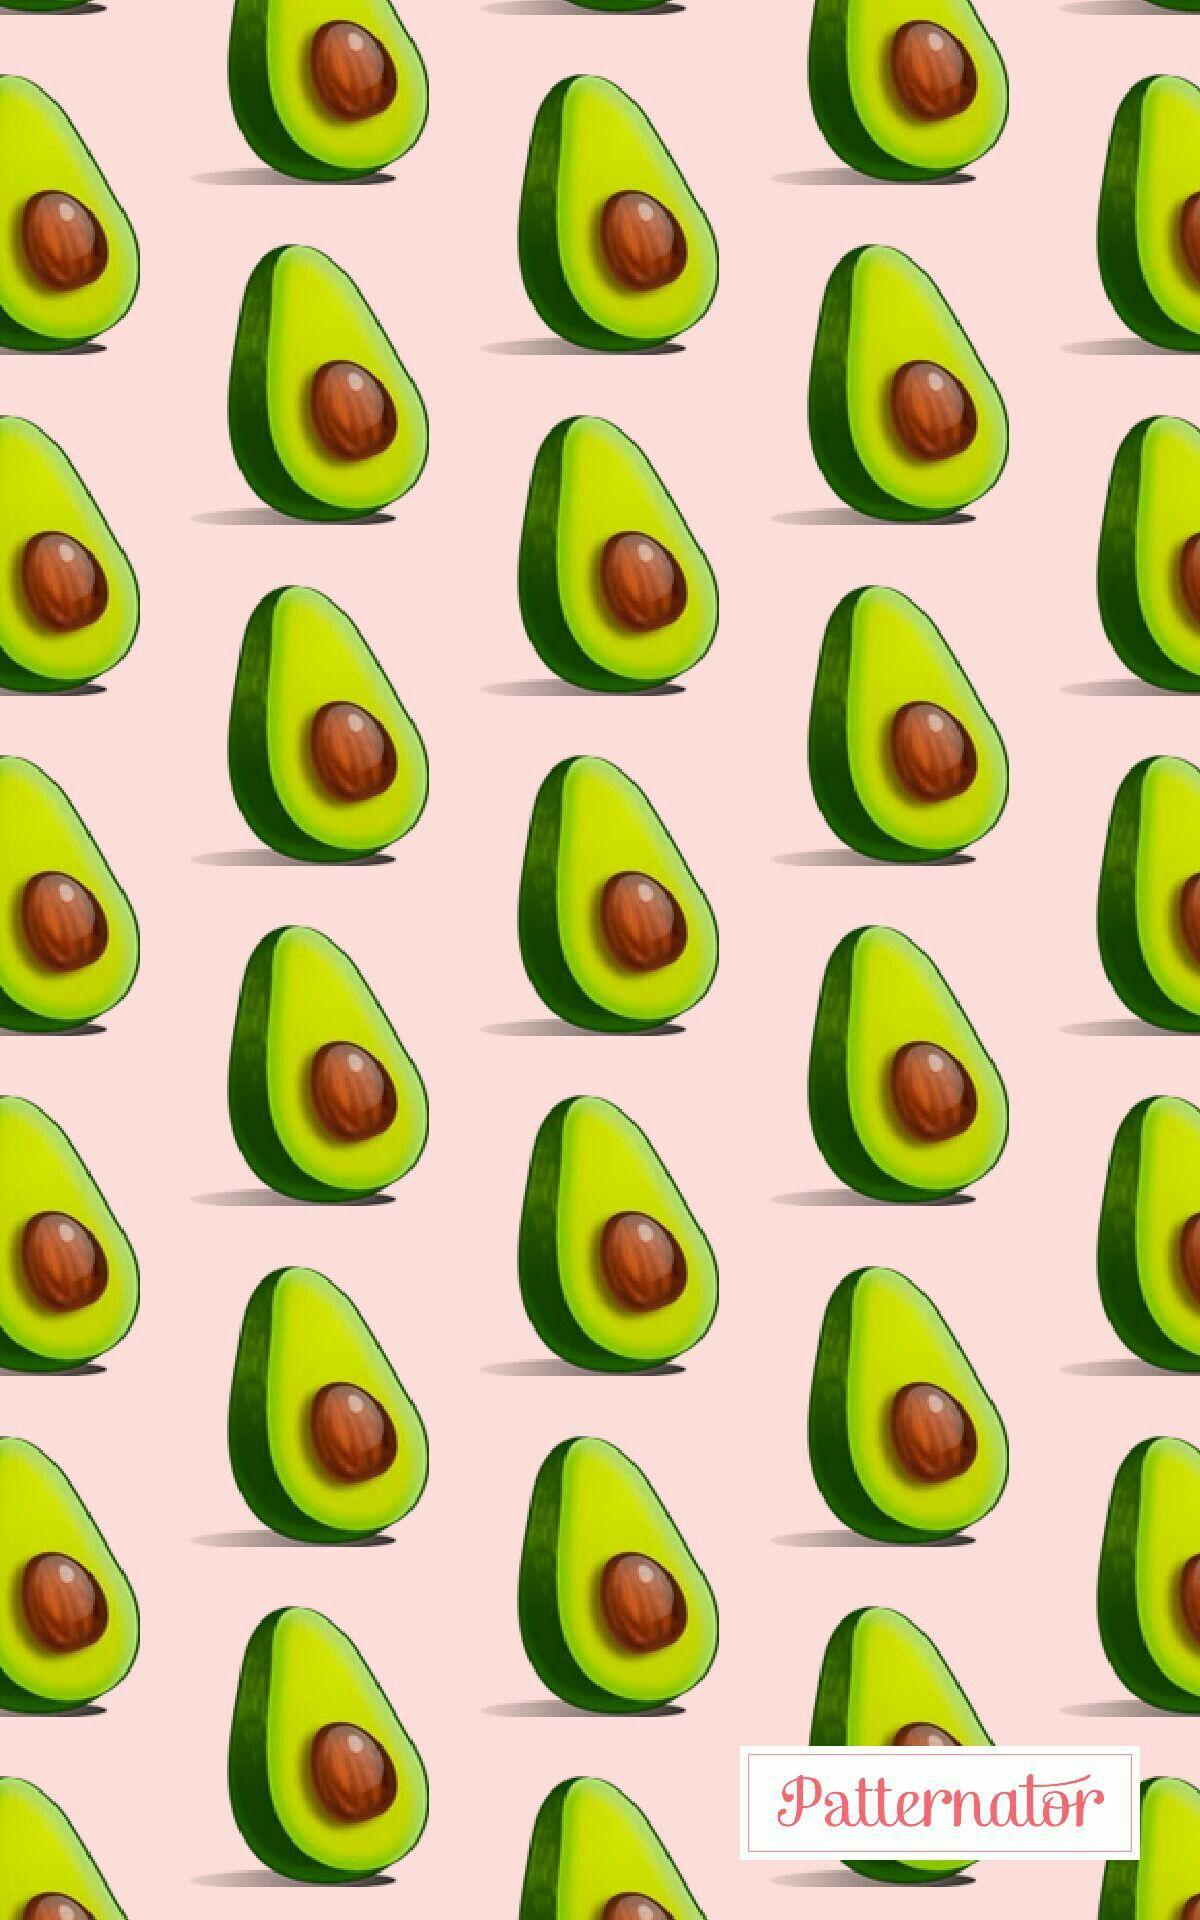 Cute Avocado Wallpapers Avocado Wallpapers Wallpaper Cave